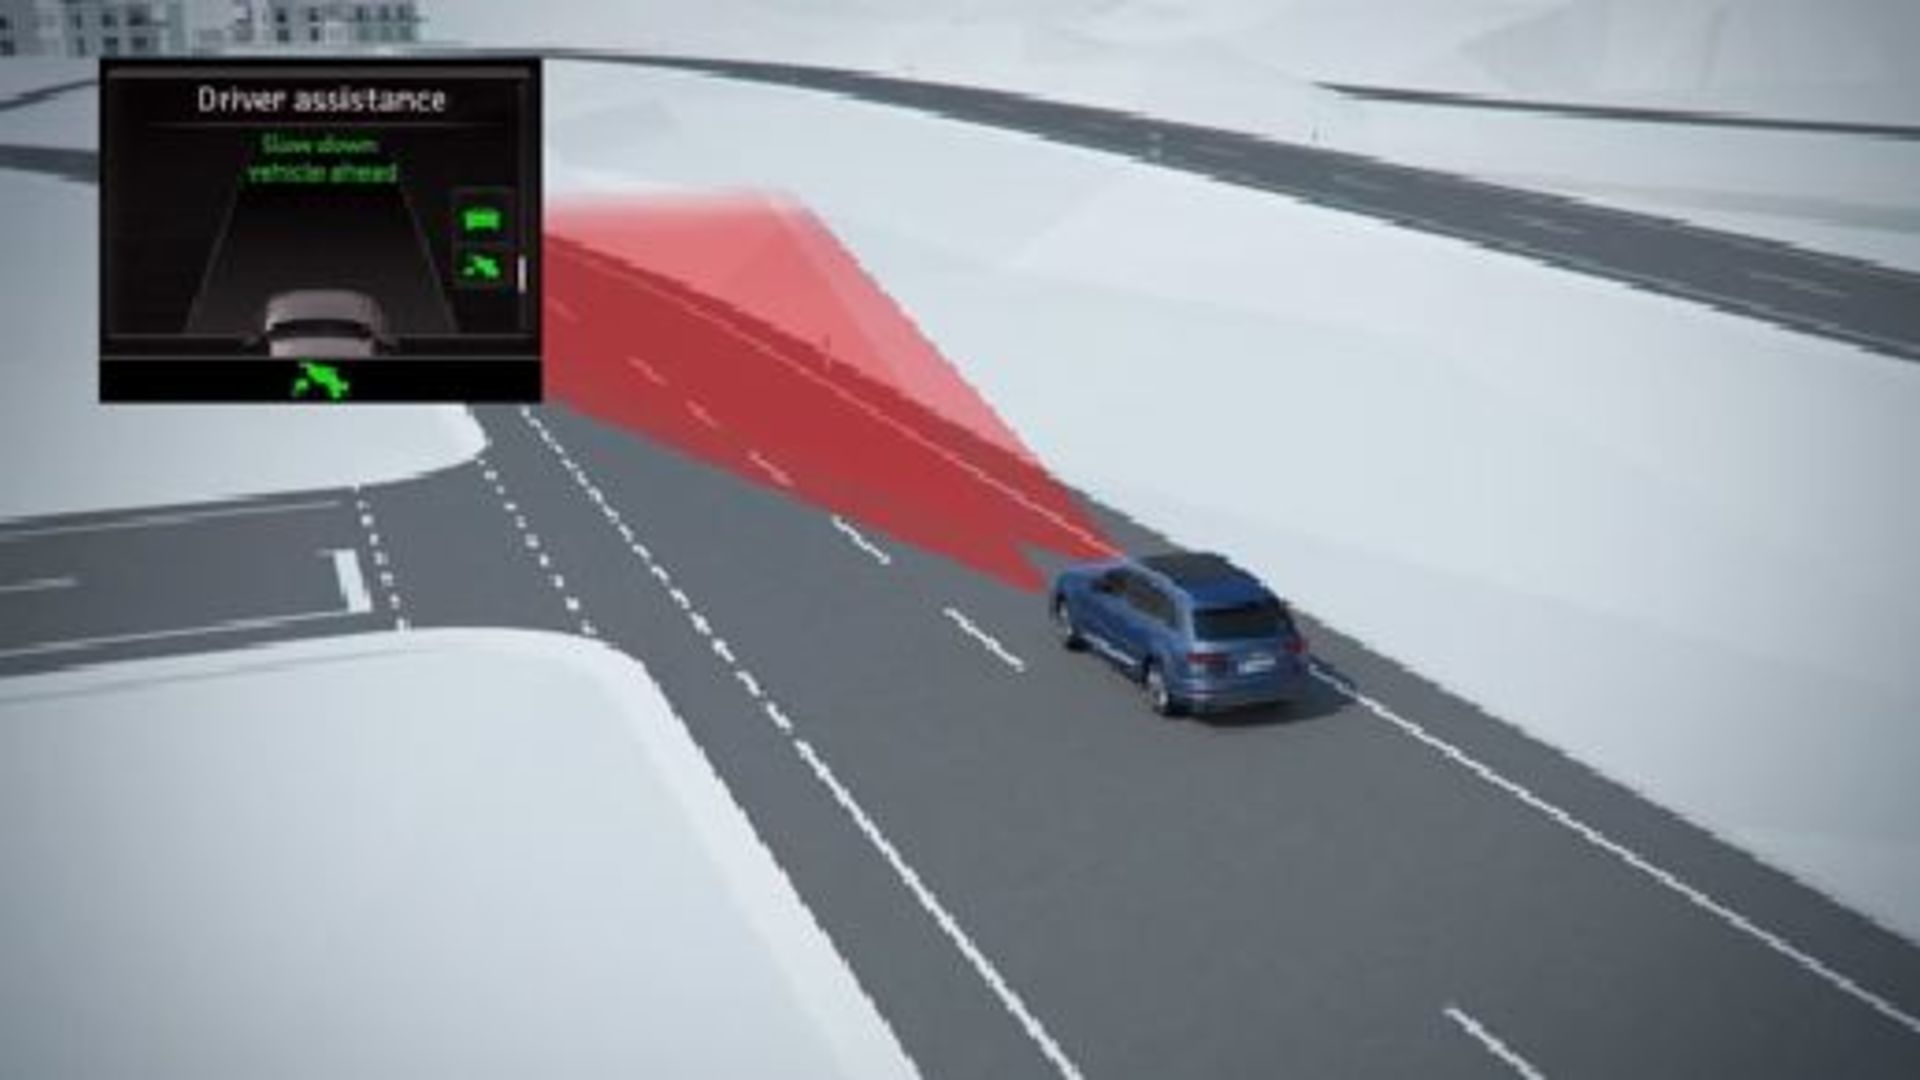 Audi Q7 - Animation predictive efficiency assistant